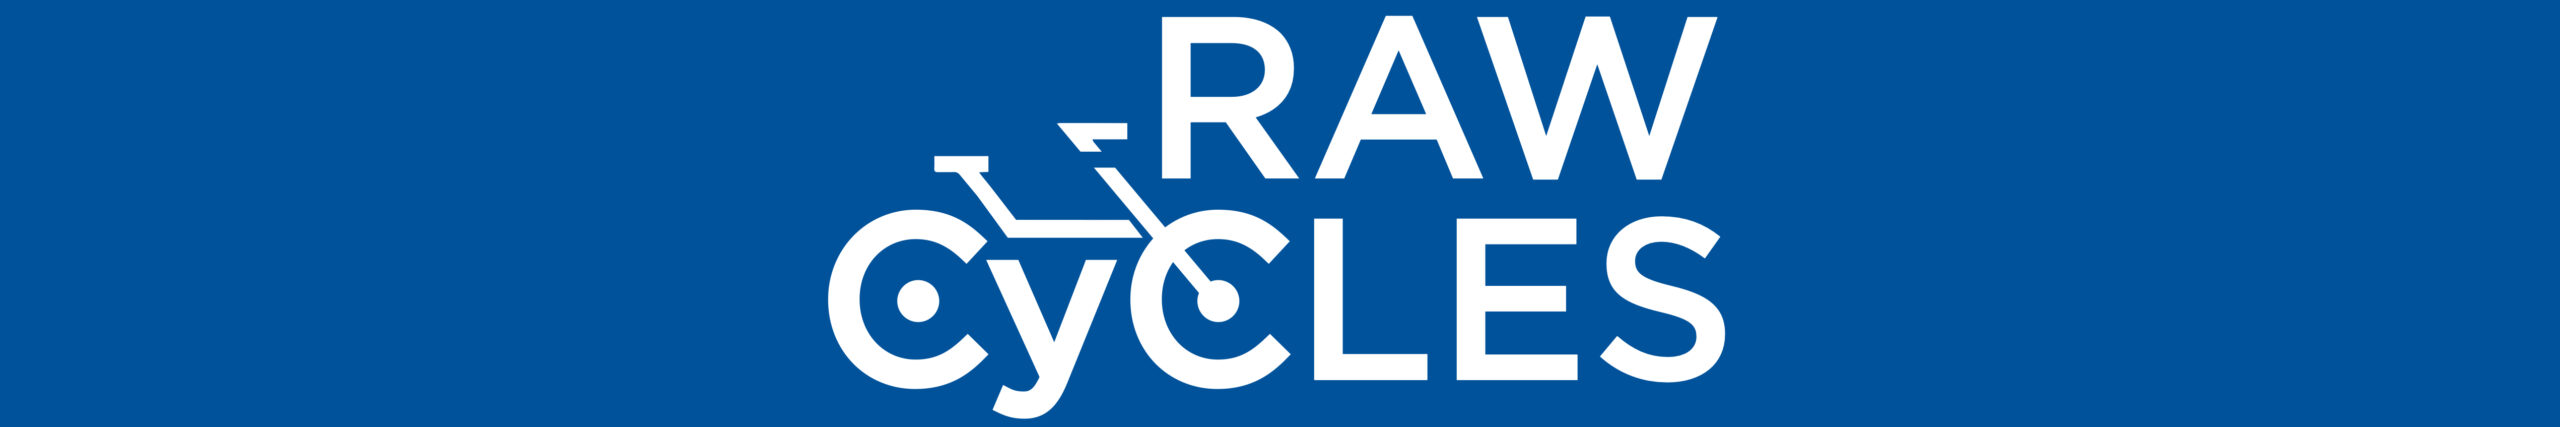 RAW Cycles